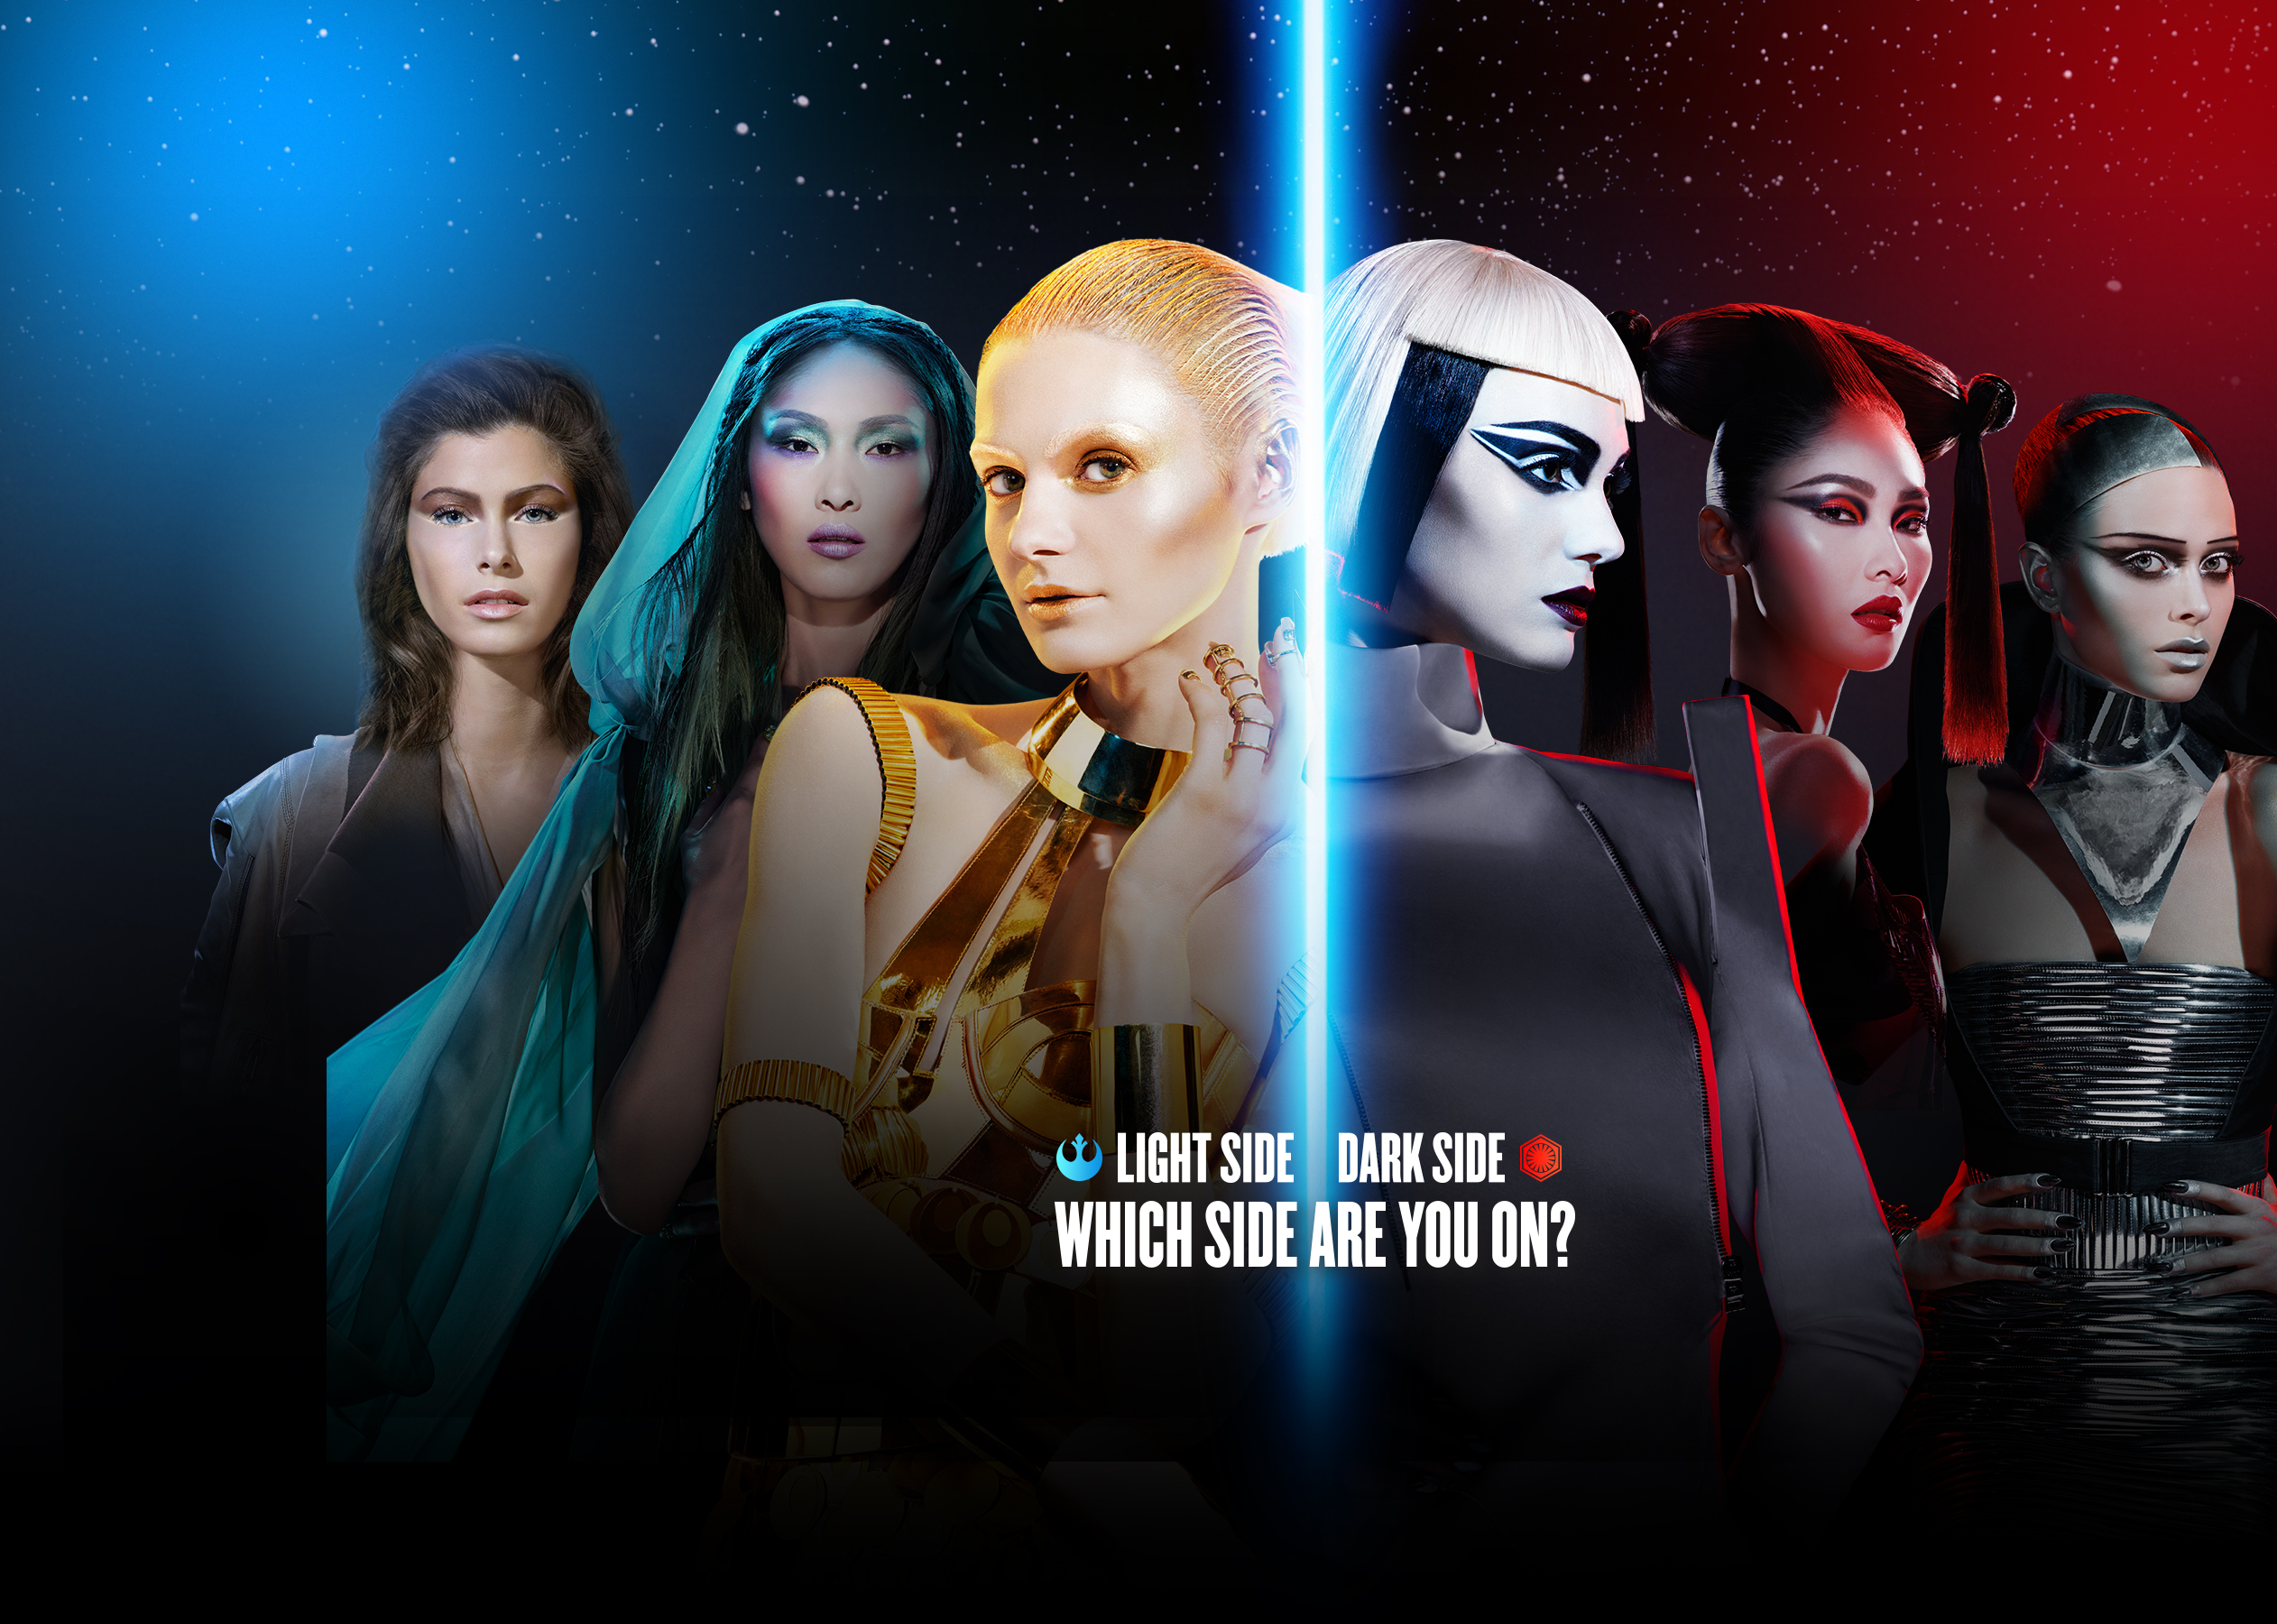 Desktop Wallpaper Stylish Girl Star Wars Limited Edition Collection I Covergirl